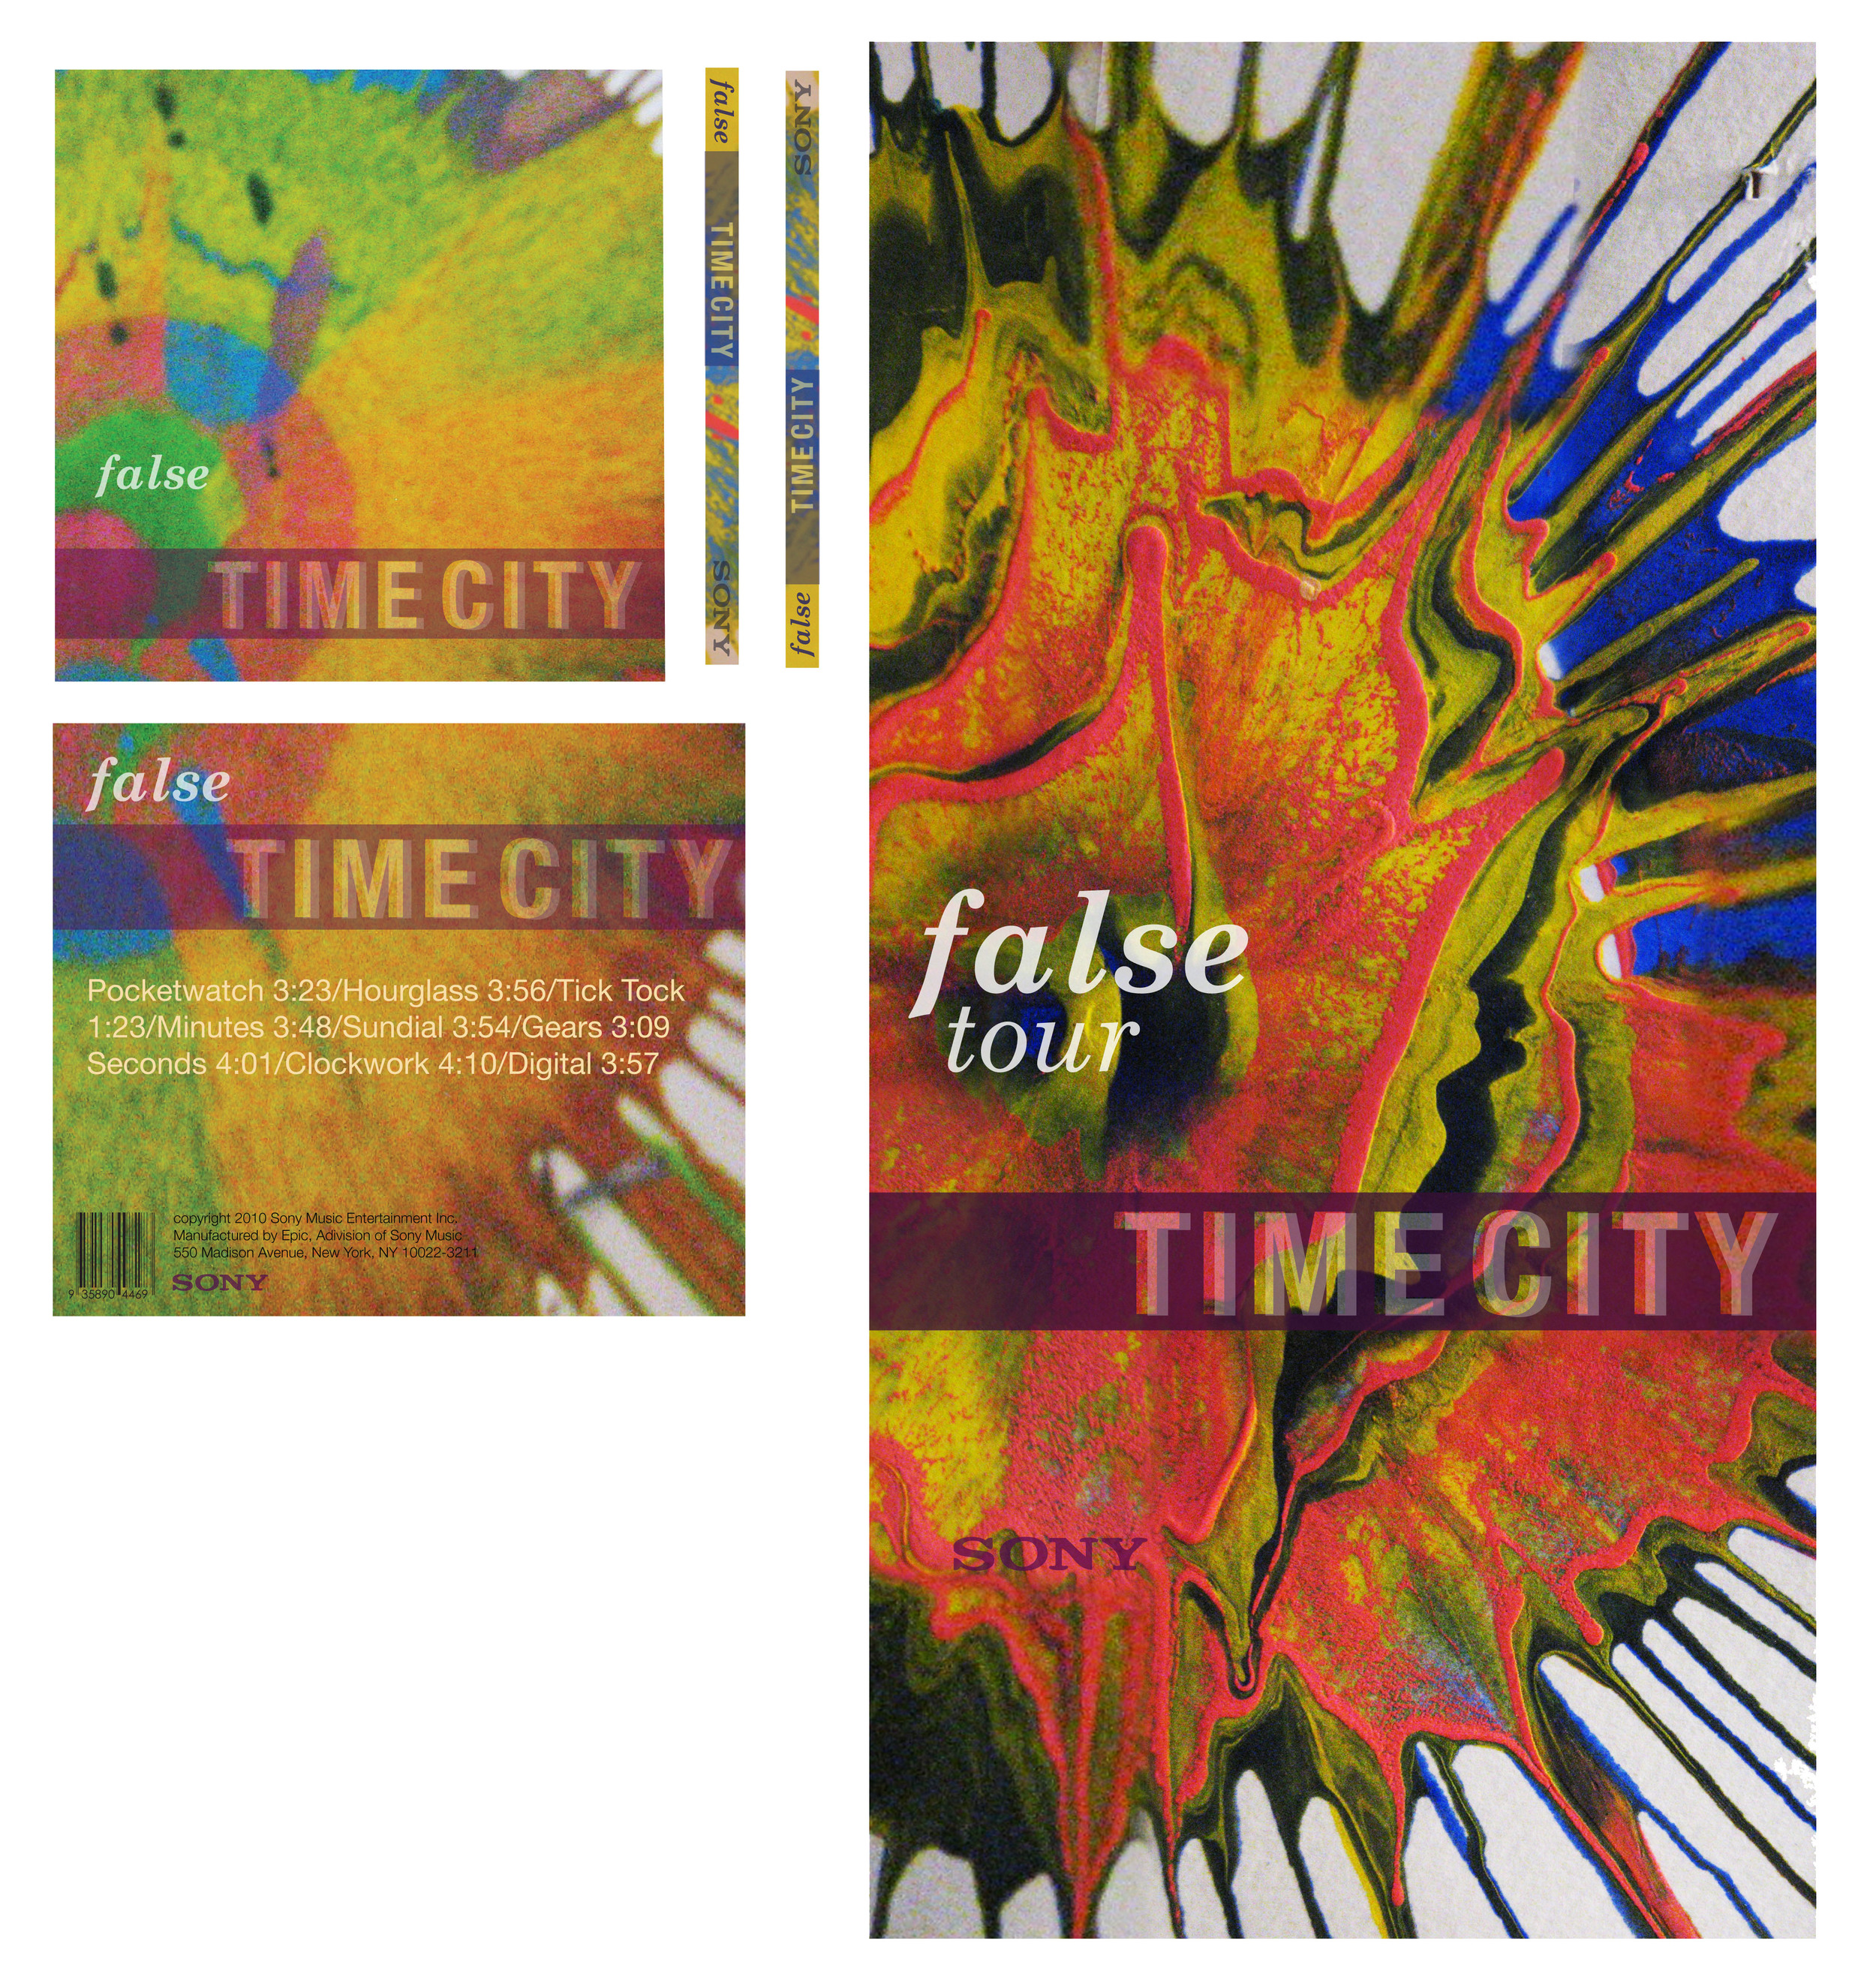 Poster and CD case for Time City's album False